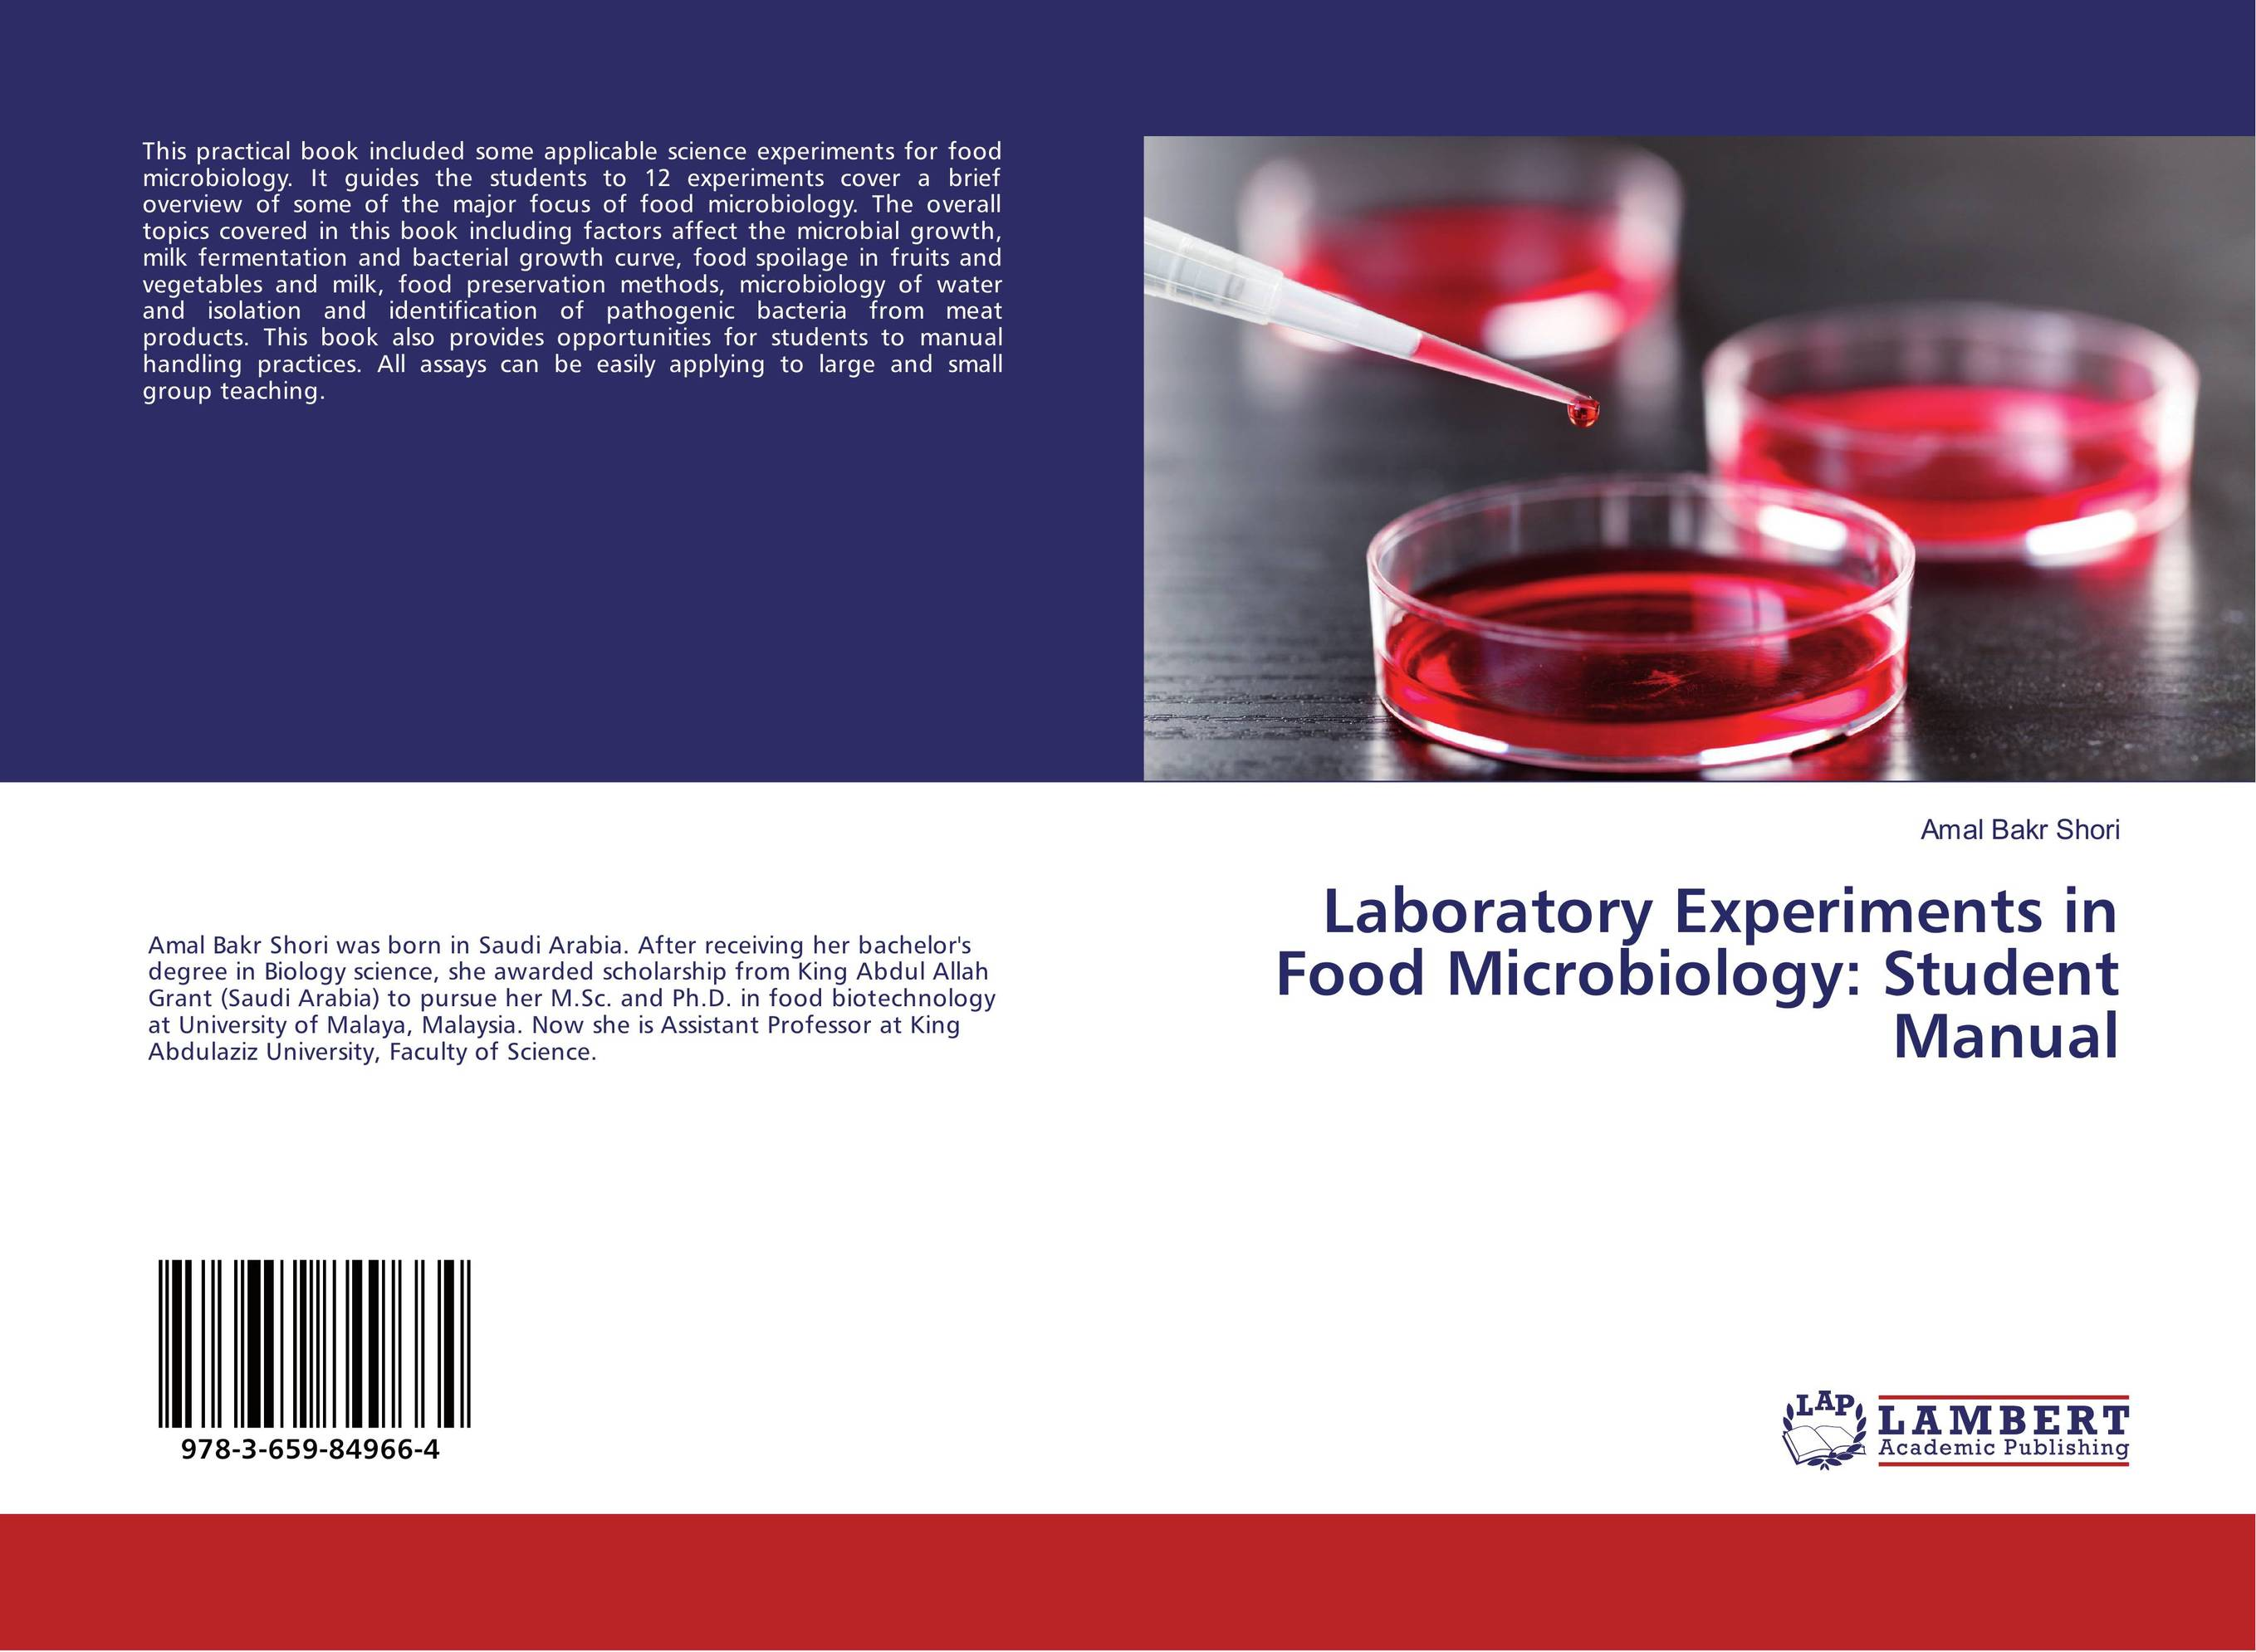 Laboratory Experiments in Food Microbiology: Student Manual thermo operated water valves can be used in food processing equipments biomass boilers and hydraulic systems